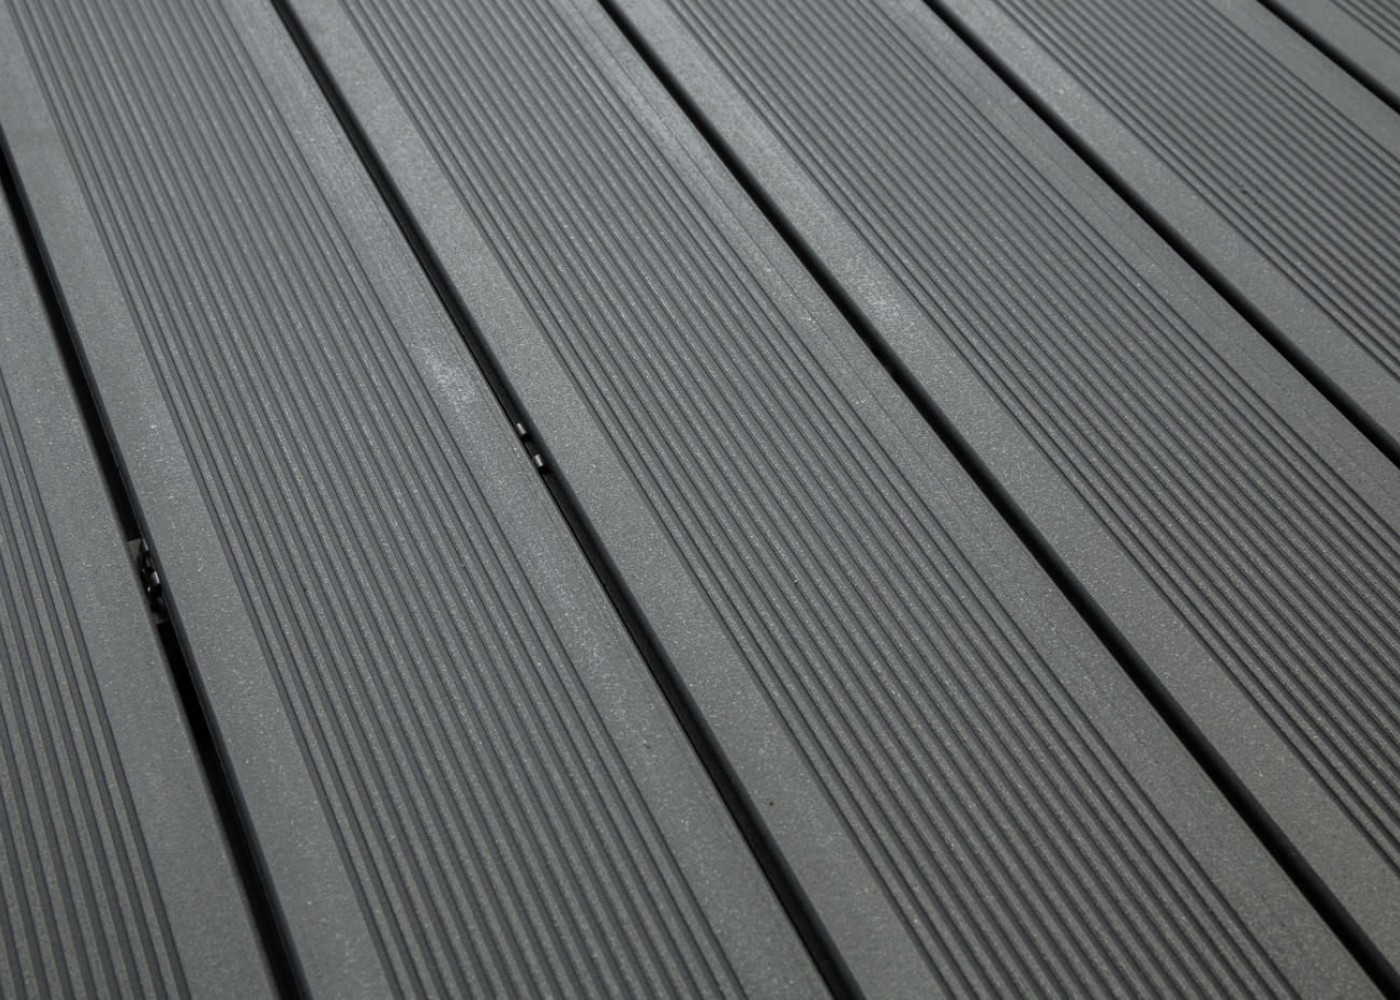 Lame Terrasse Composite Gris Anthracite Bois Composite Teinte Gris Anthracite Antidérapant